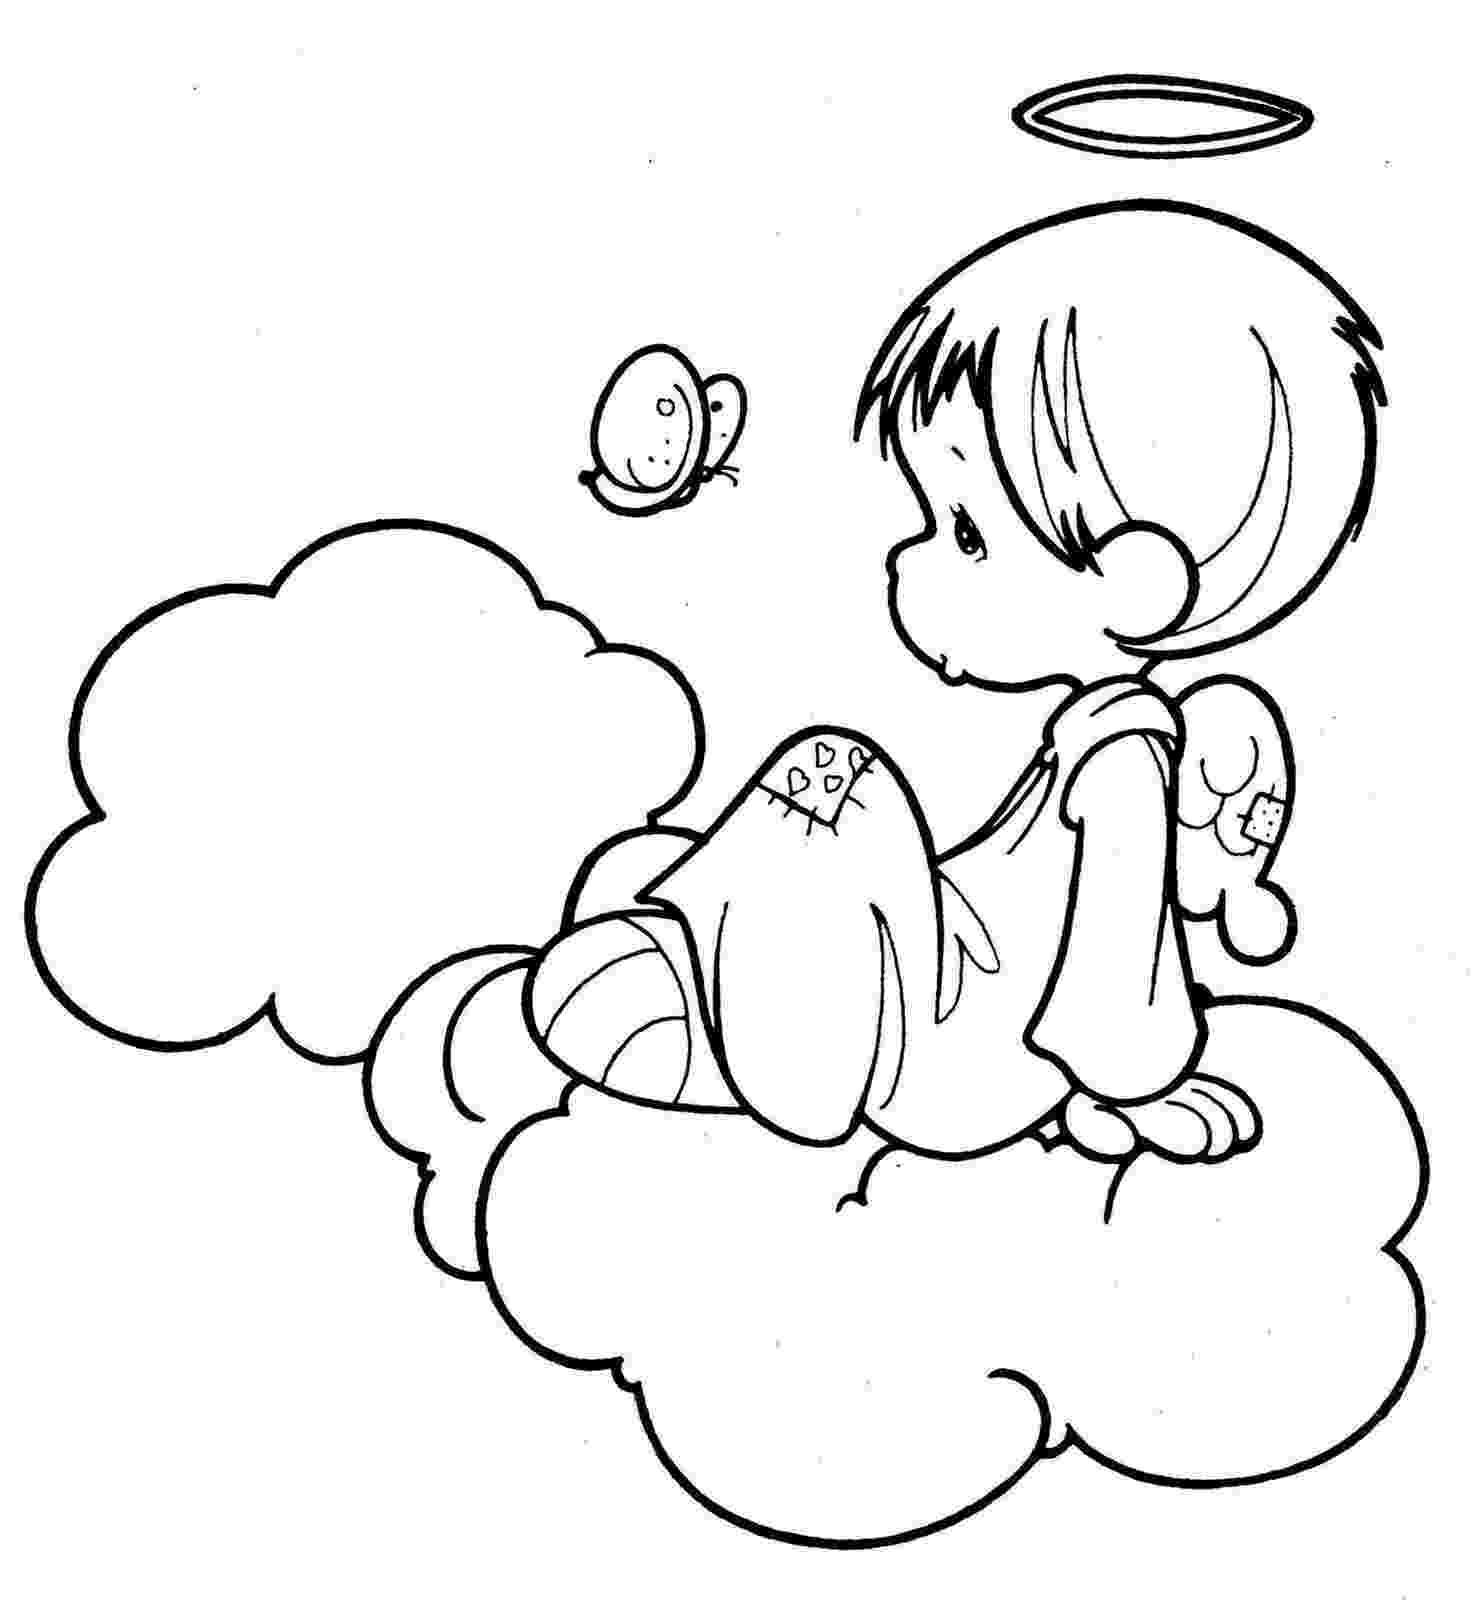 pictures of angels to color kids page angel coloring pages to color pictures angels of